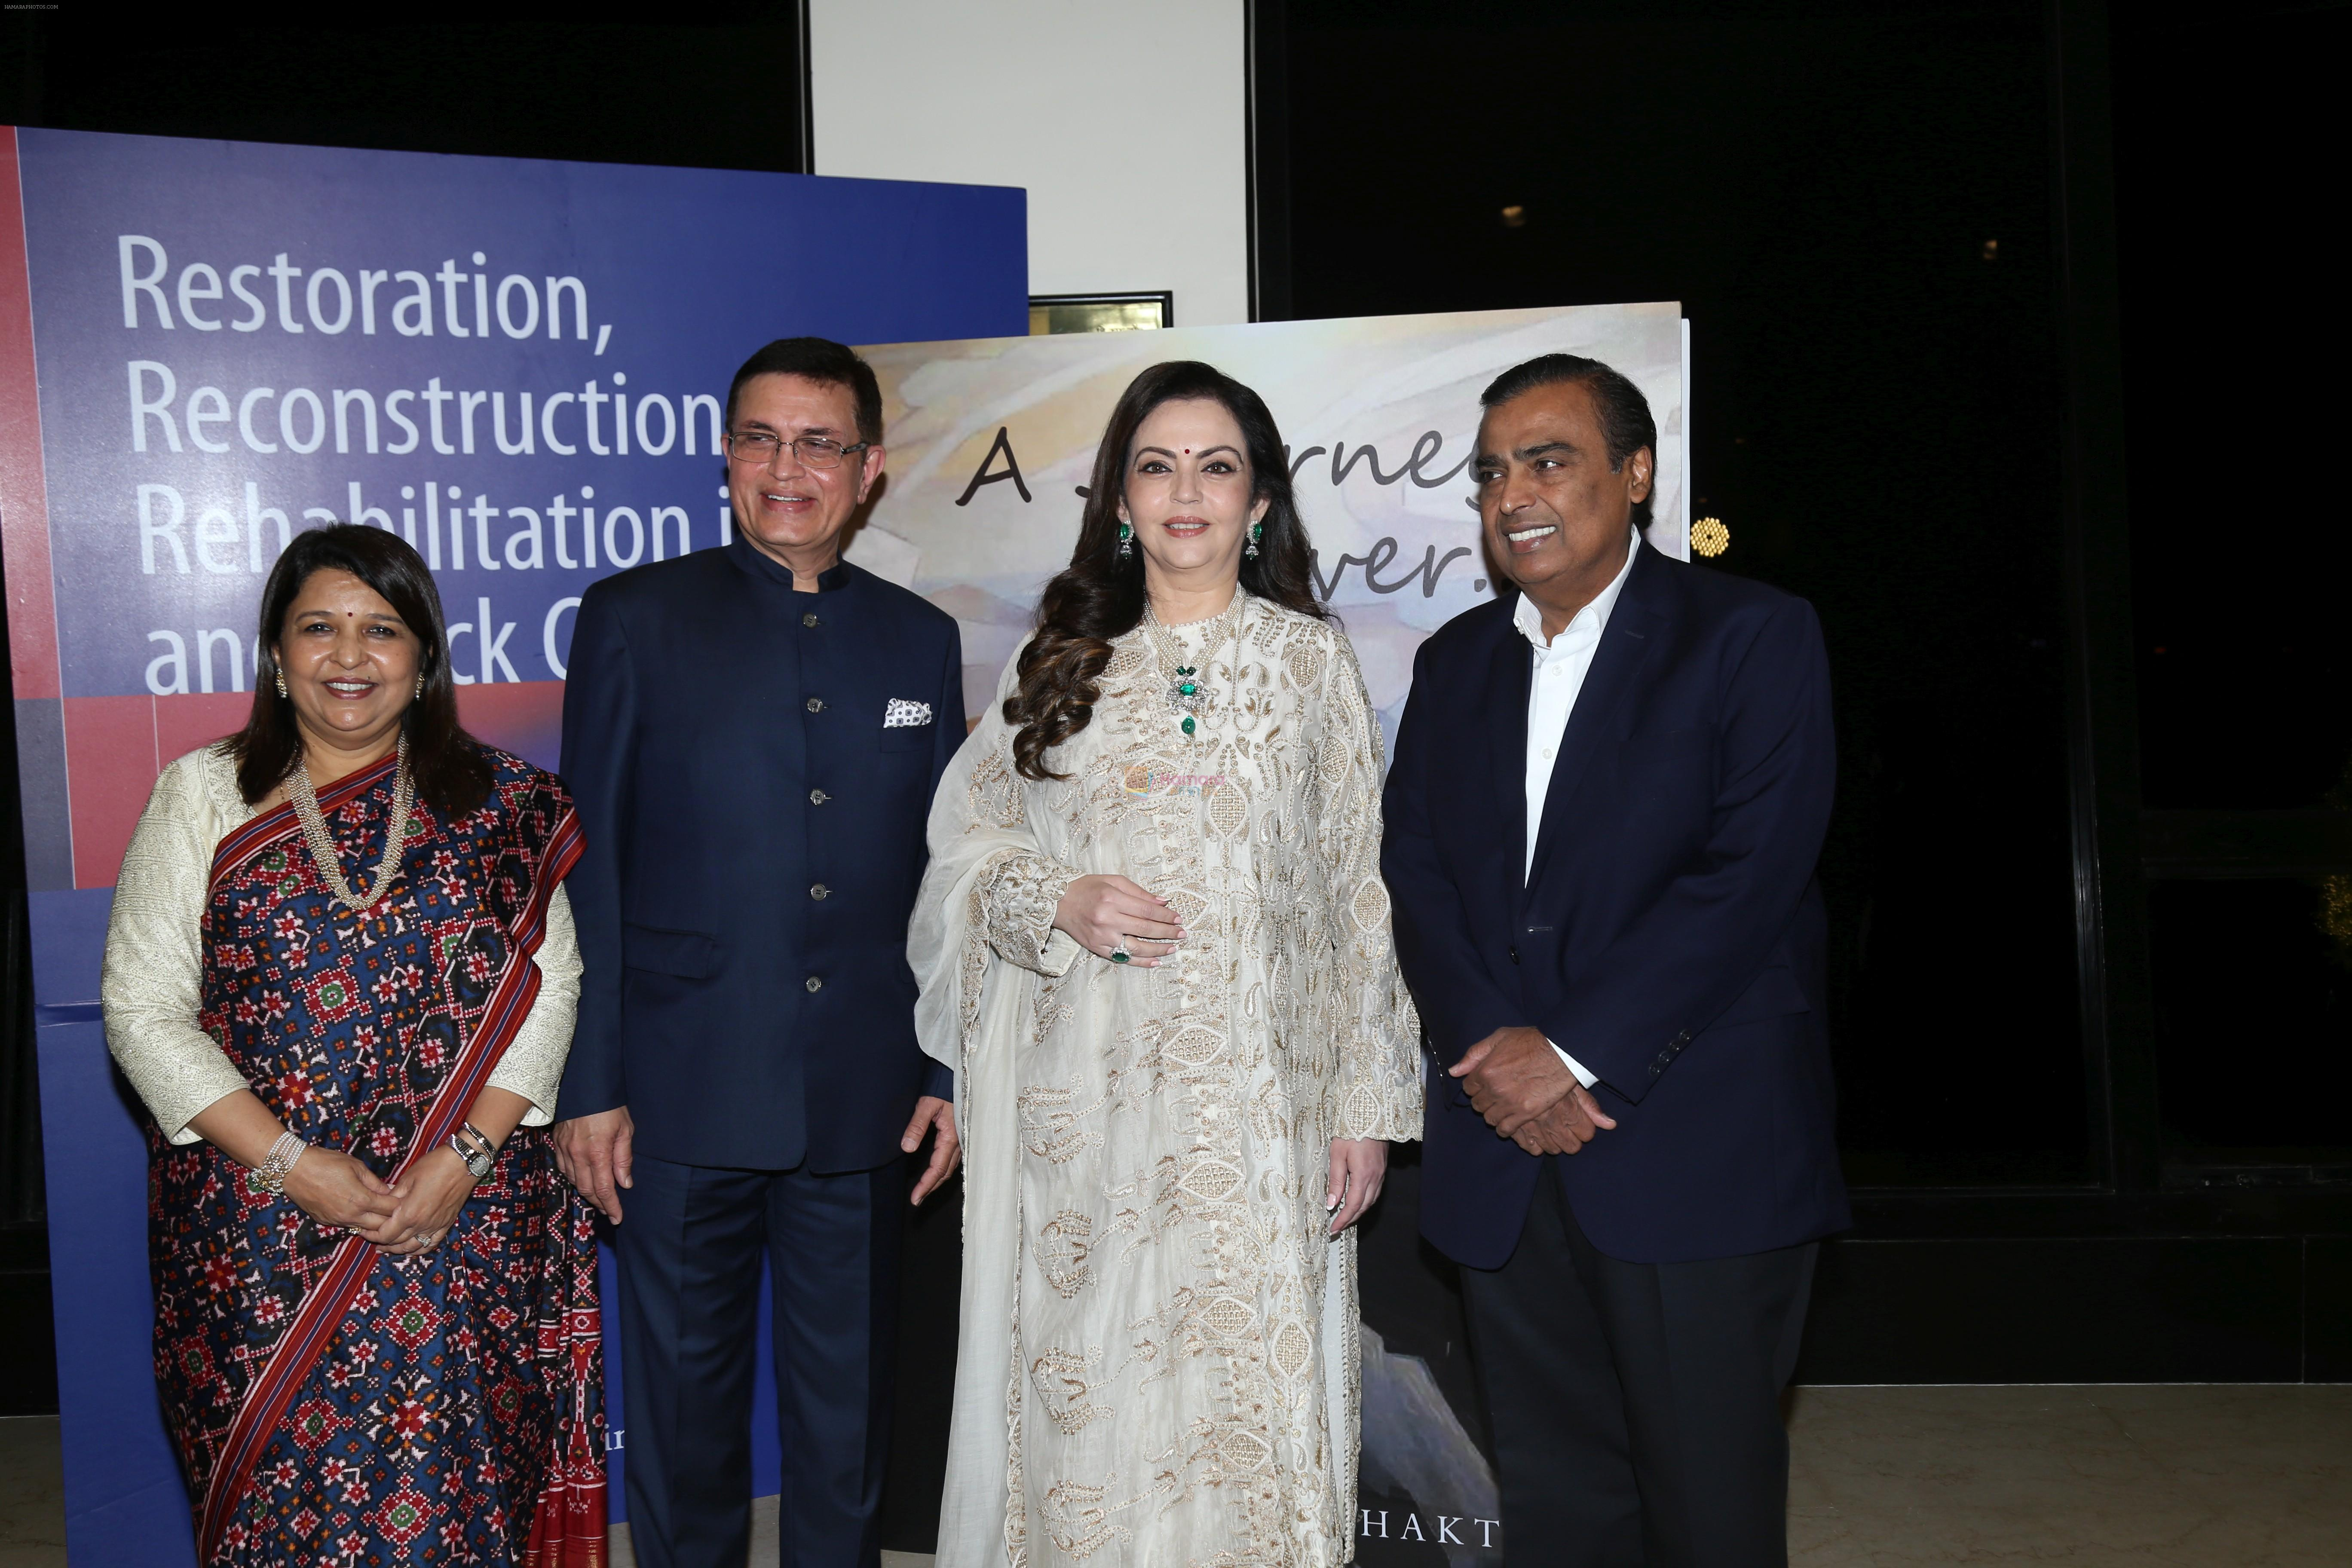 Mukesh & Nita Ambani at the book launch of Dr Vijay Haribhakti at Trident nariman point on 1st Sept 2019